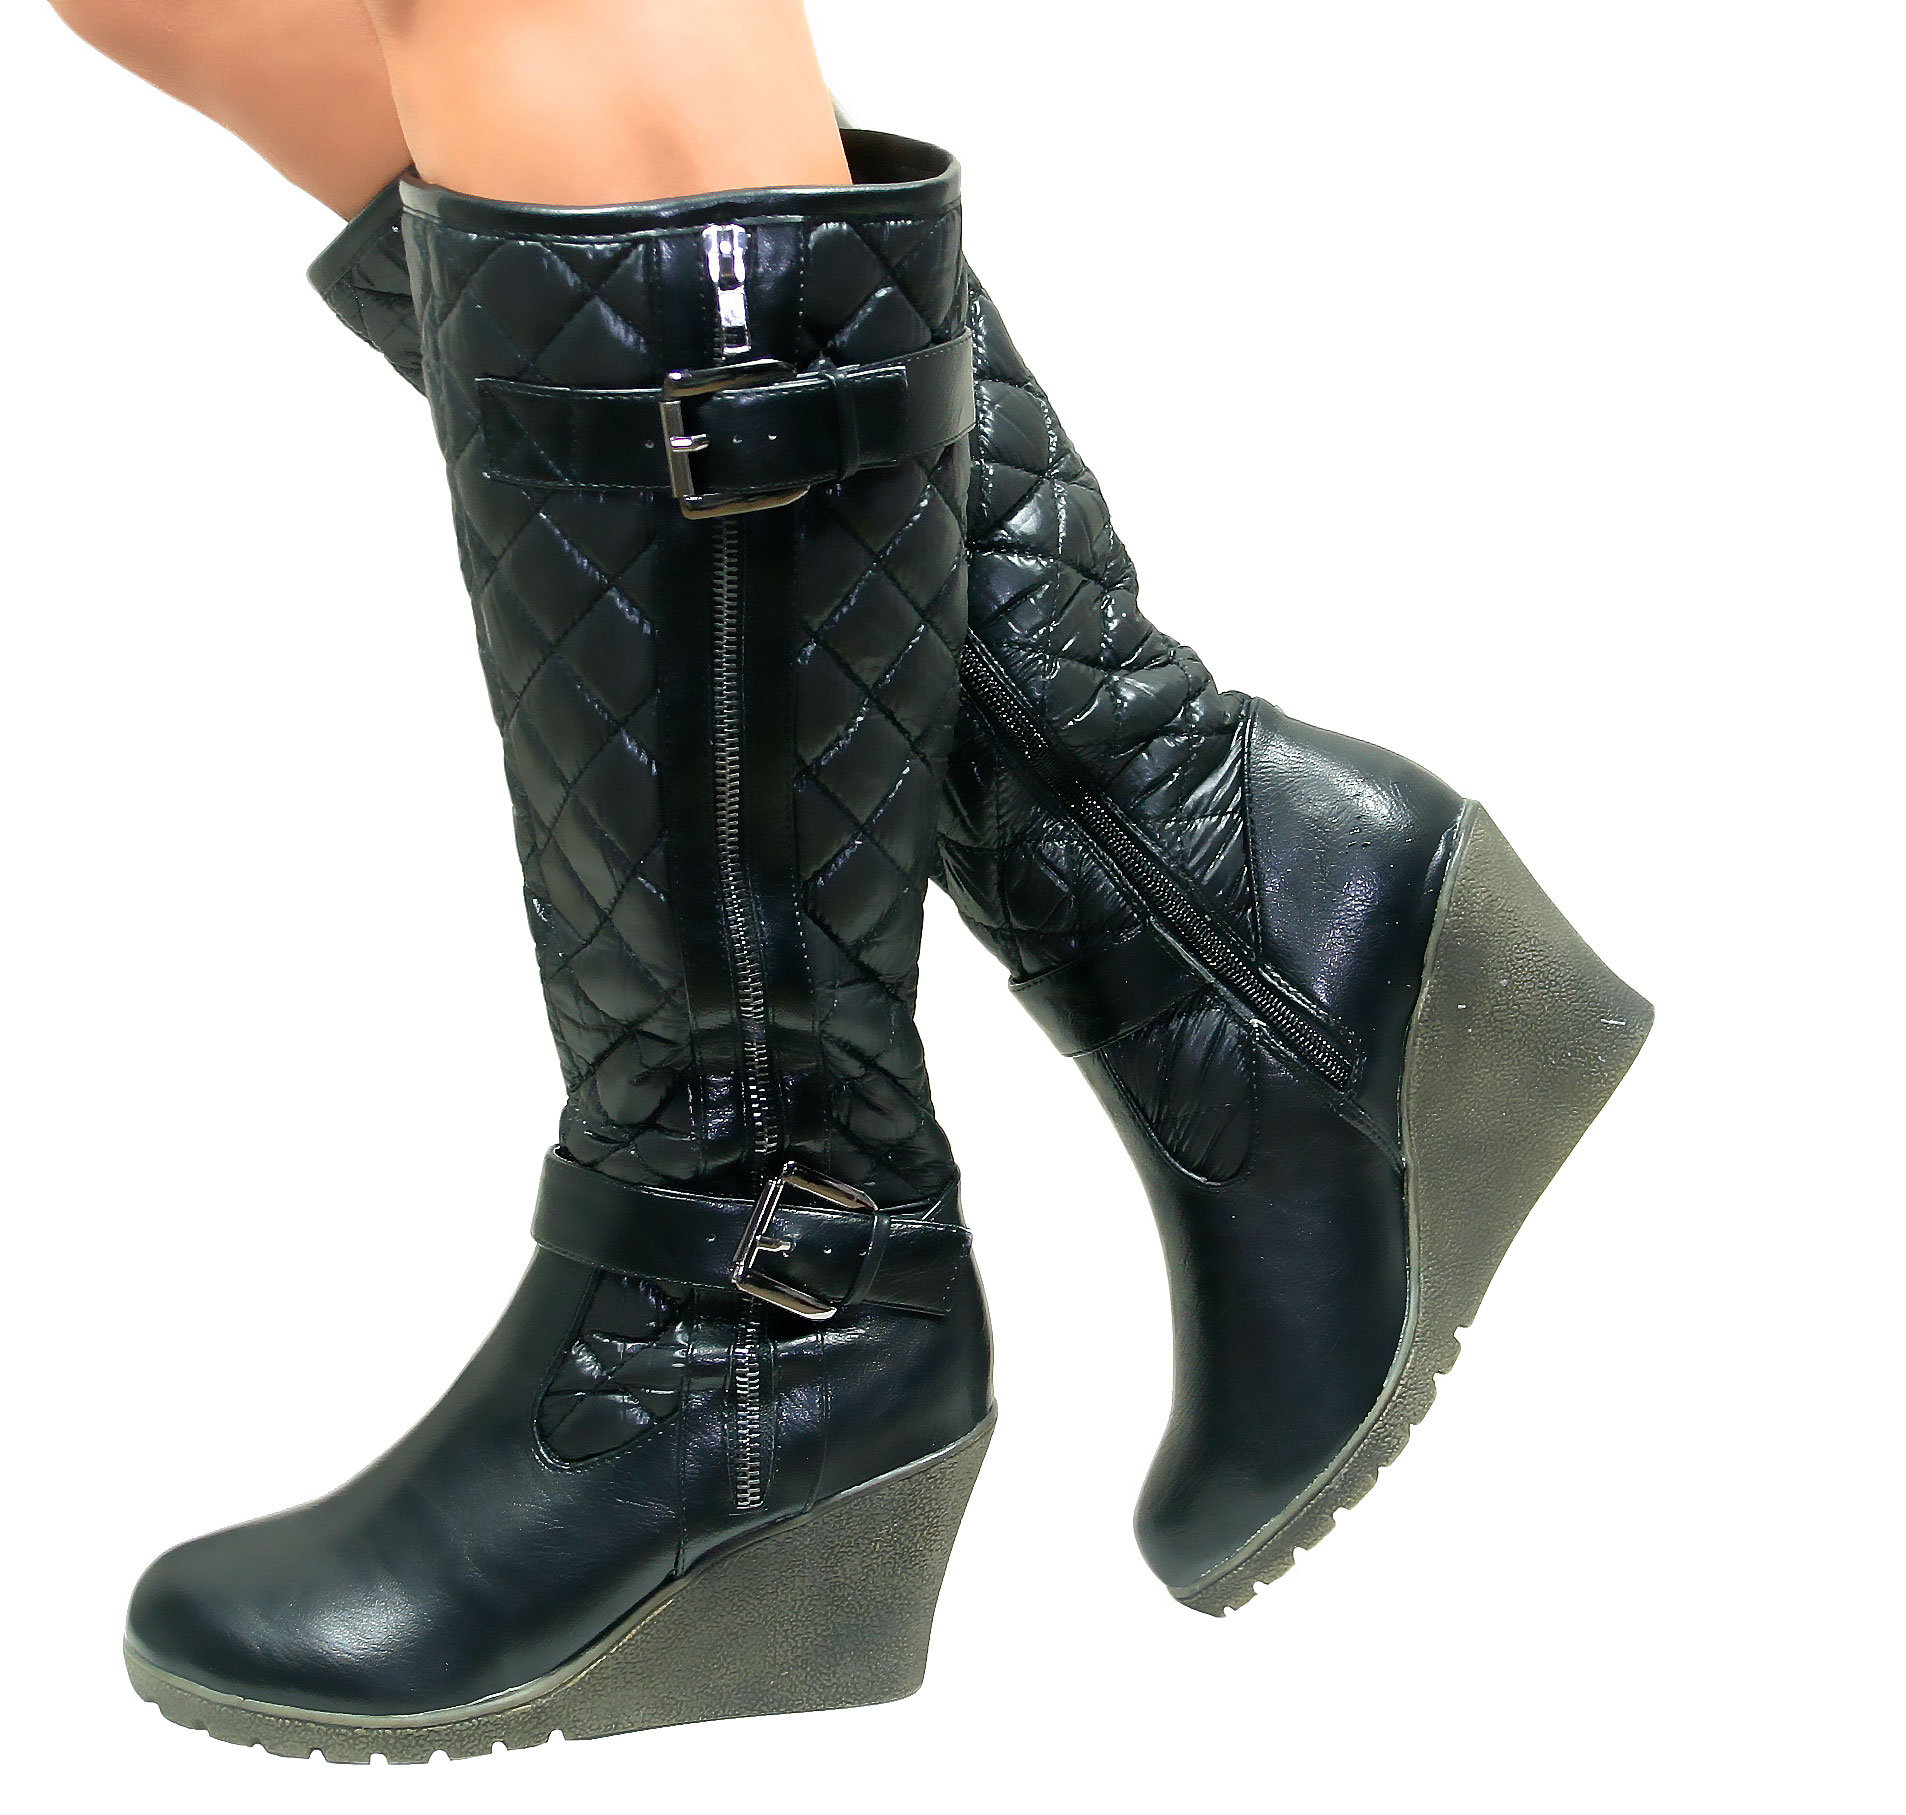 Wedge Heel Boots For Women